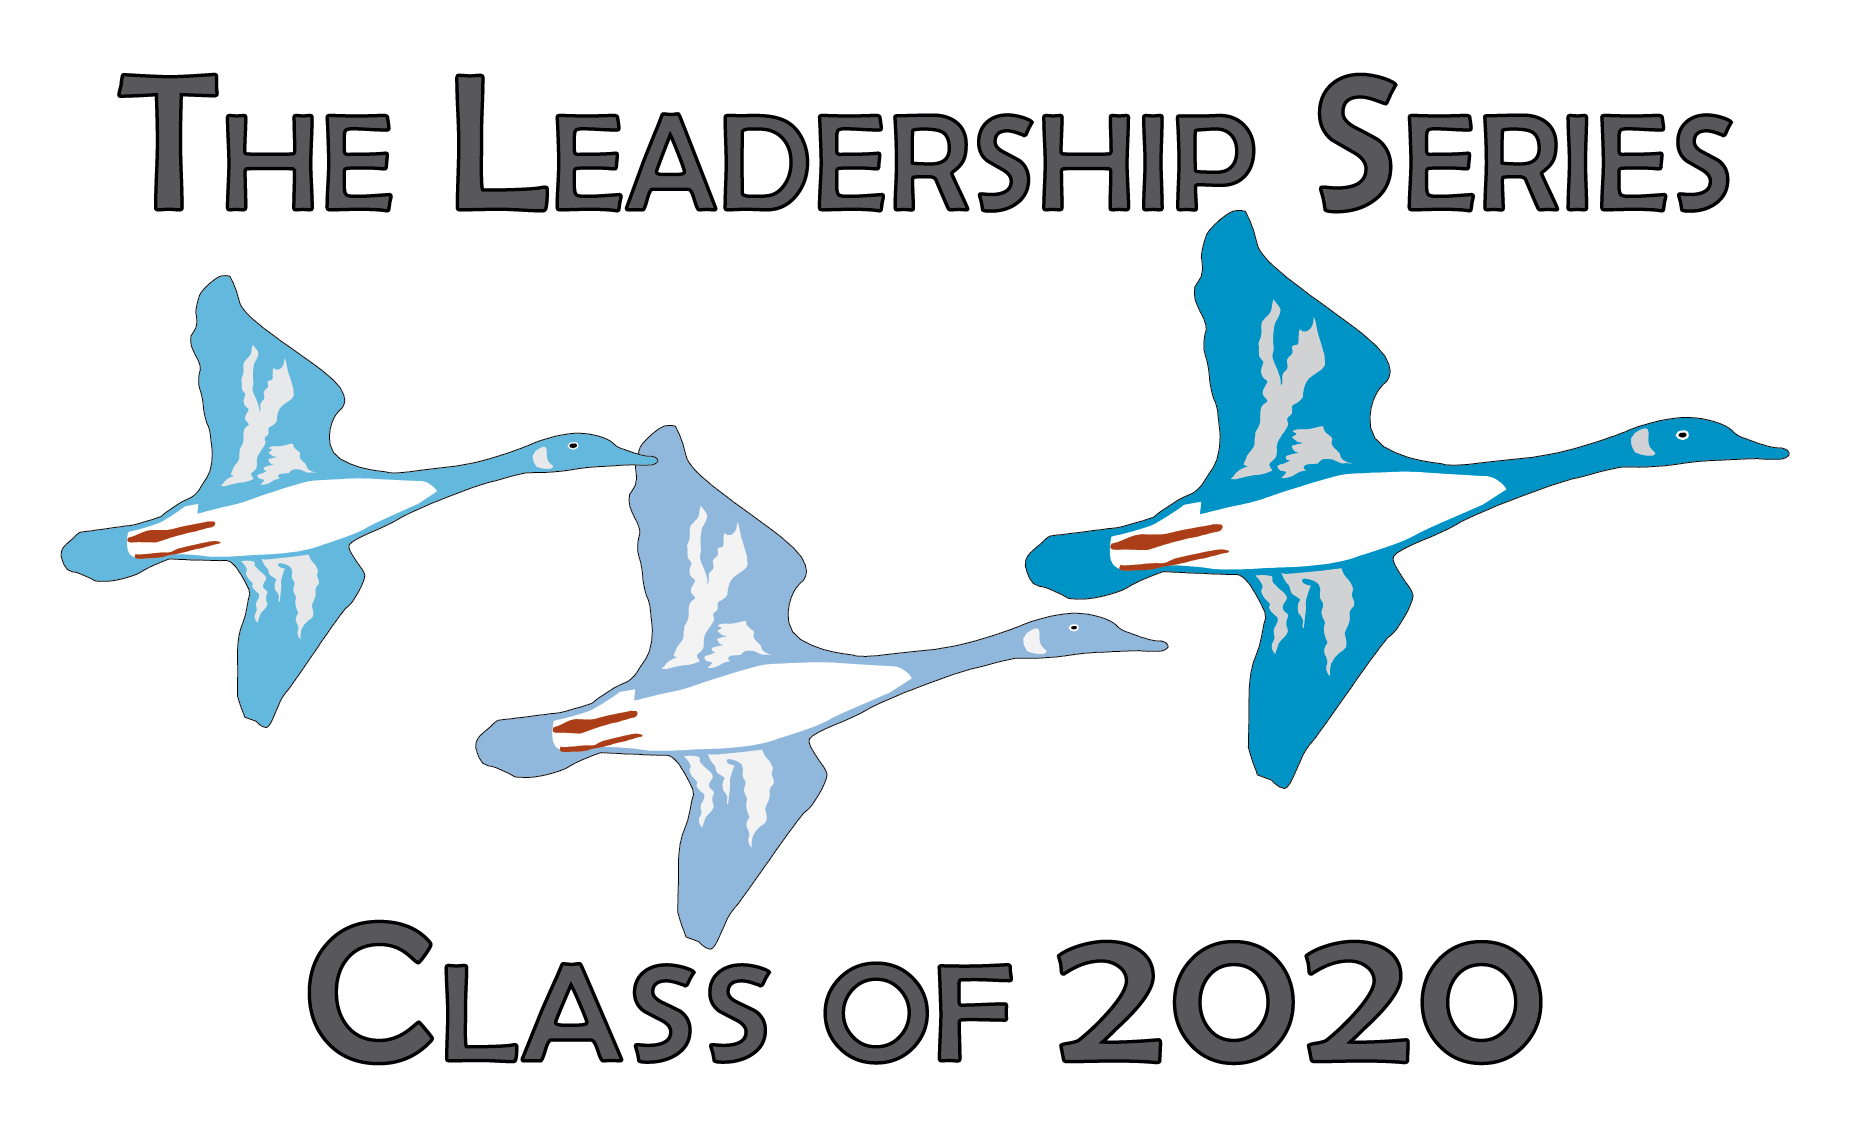 Cartoon drawing of 3 flying geese and the wods: The Leadership Series Class of 2020